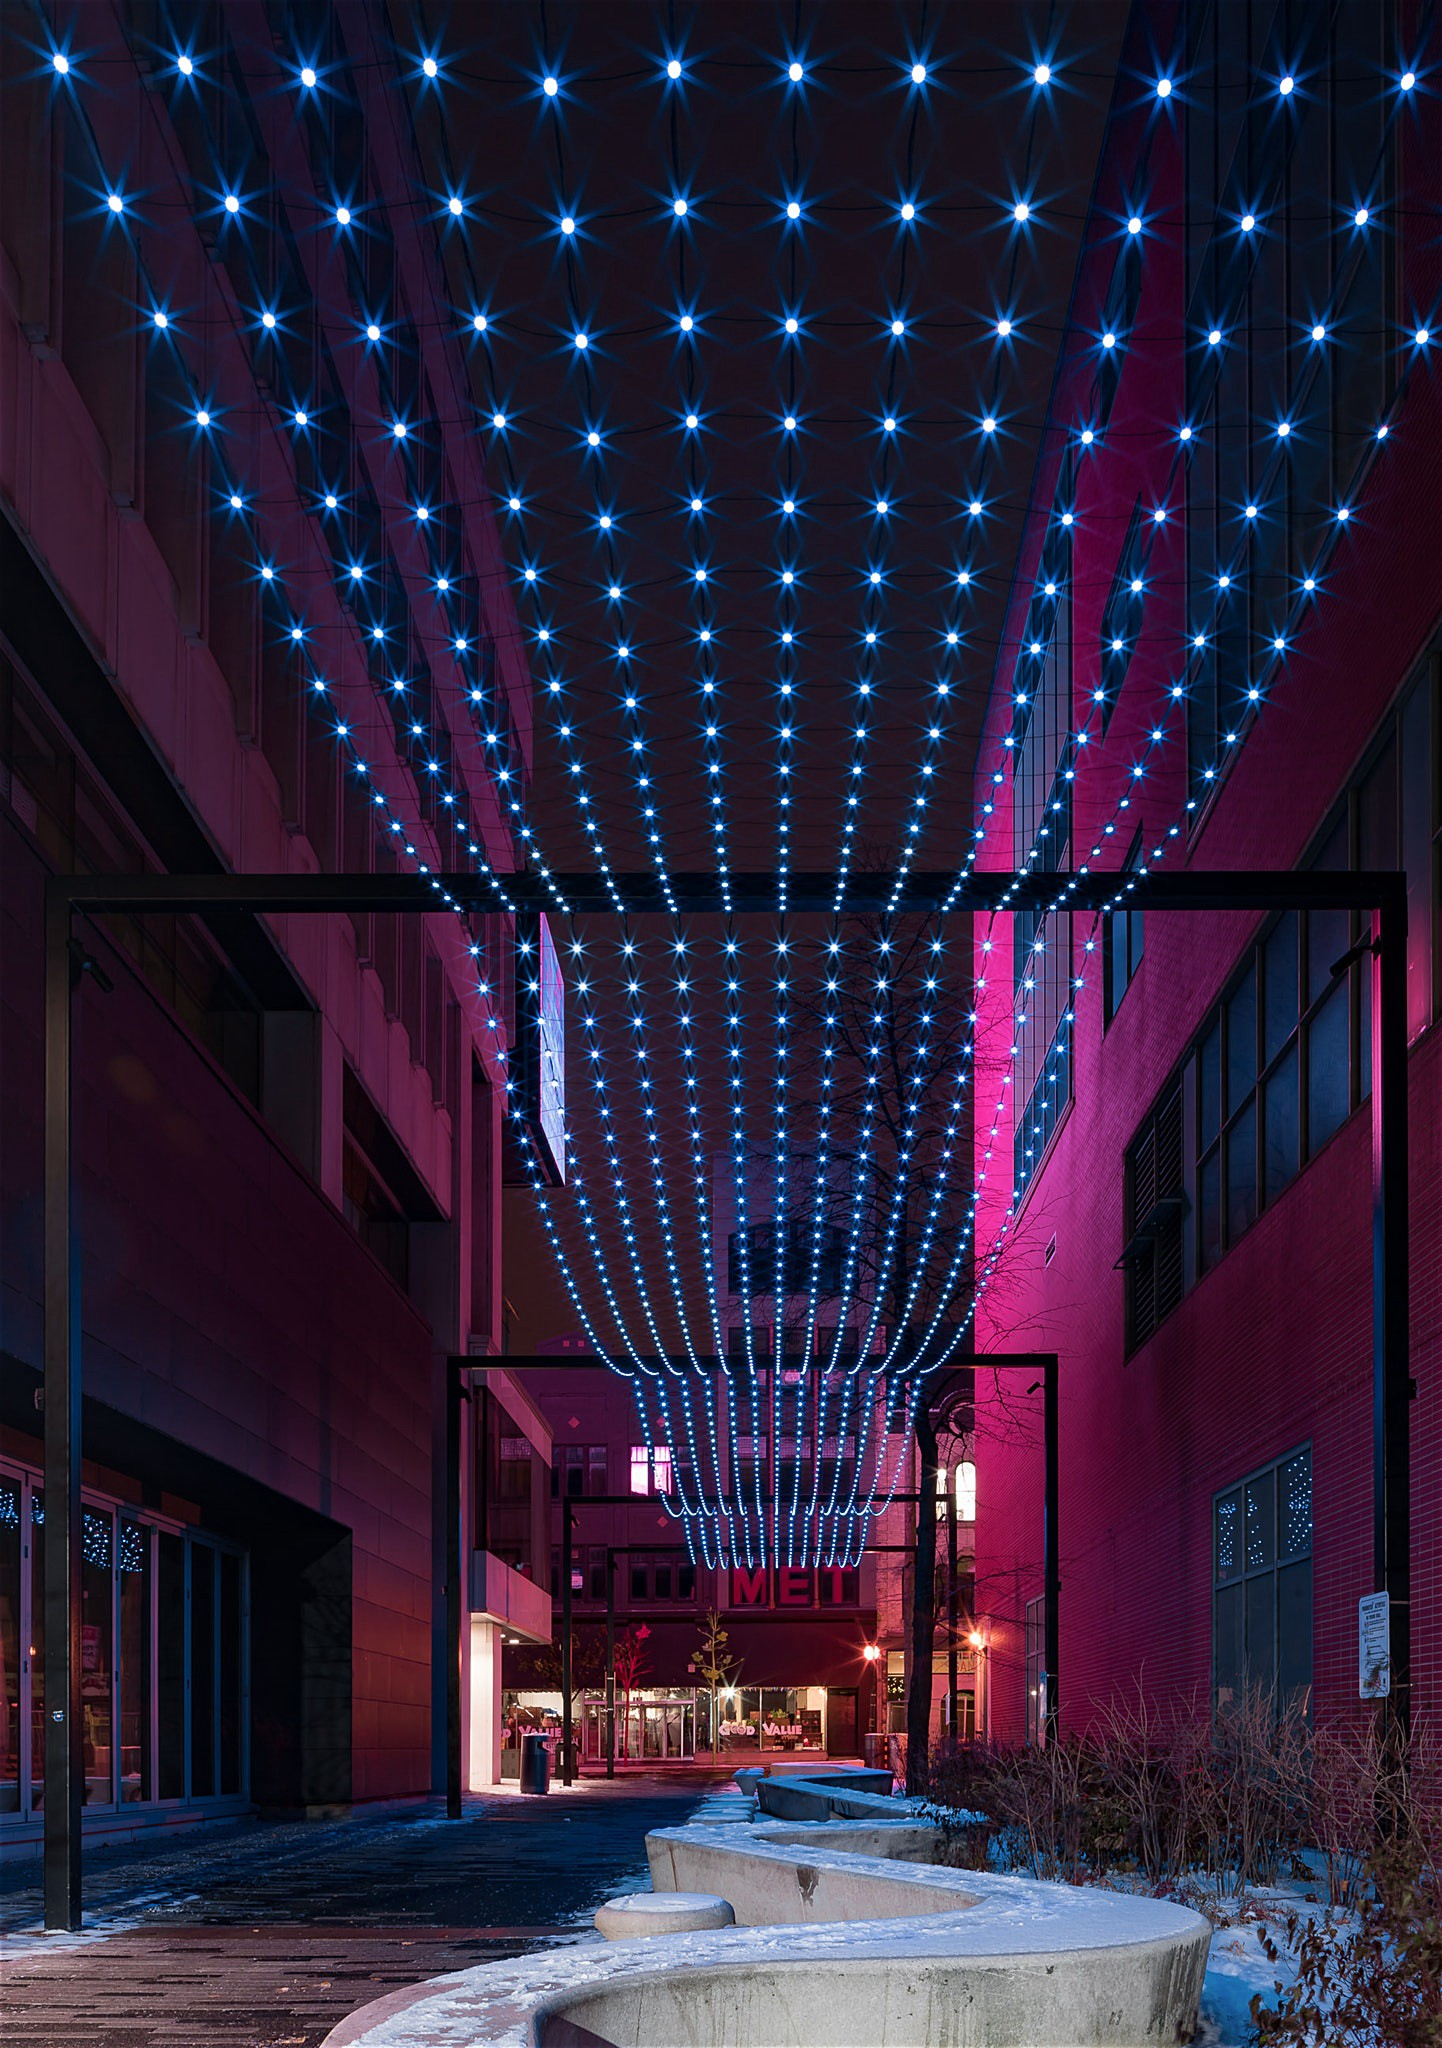 Market Lane in Downtown London at night by Scott Webb Photography 2017